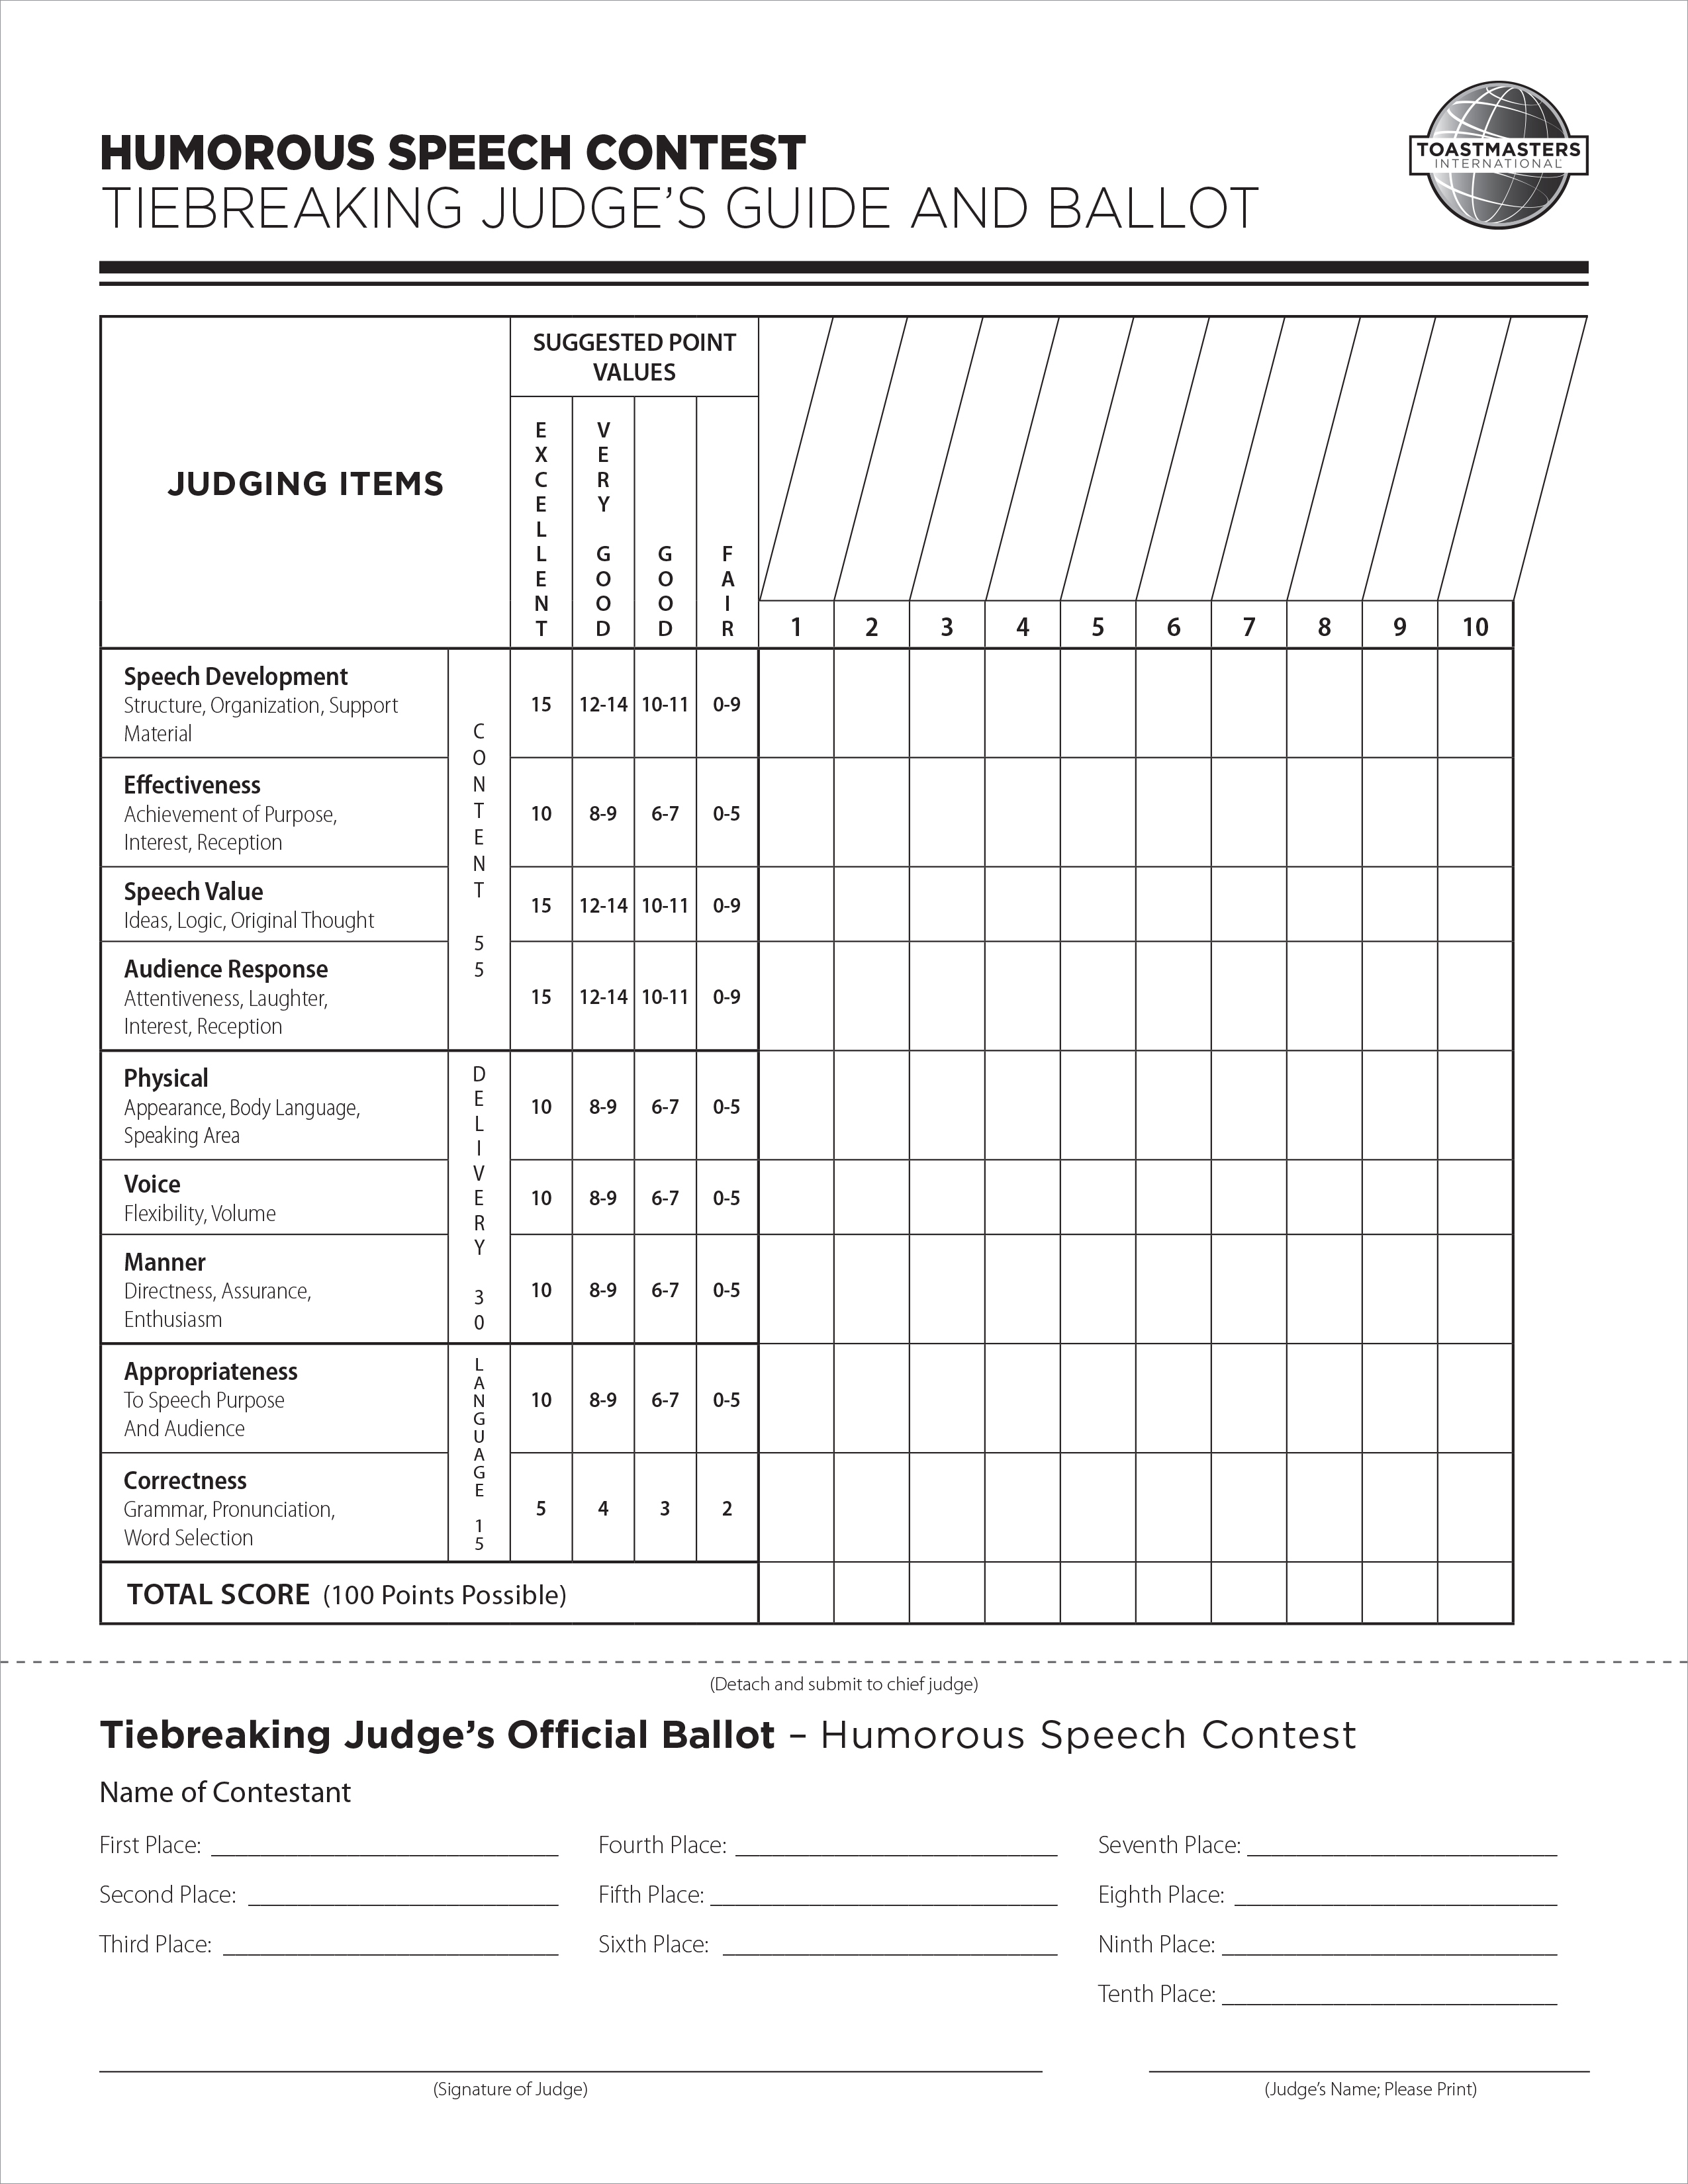 humorous speech contest tiebreaking judges guide and ballot